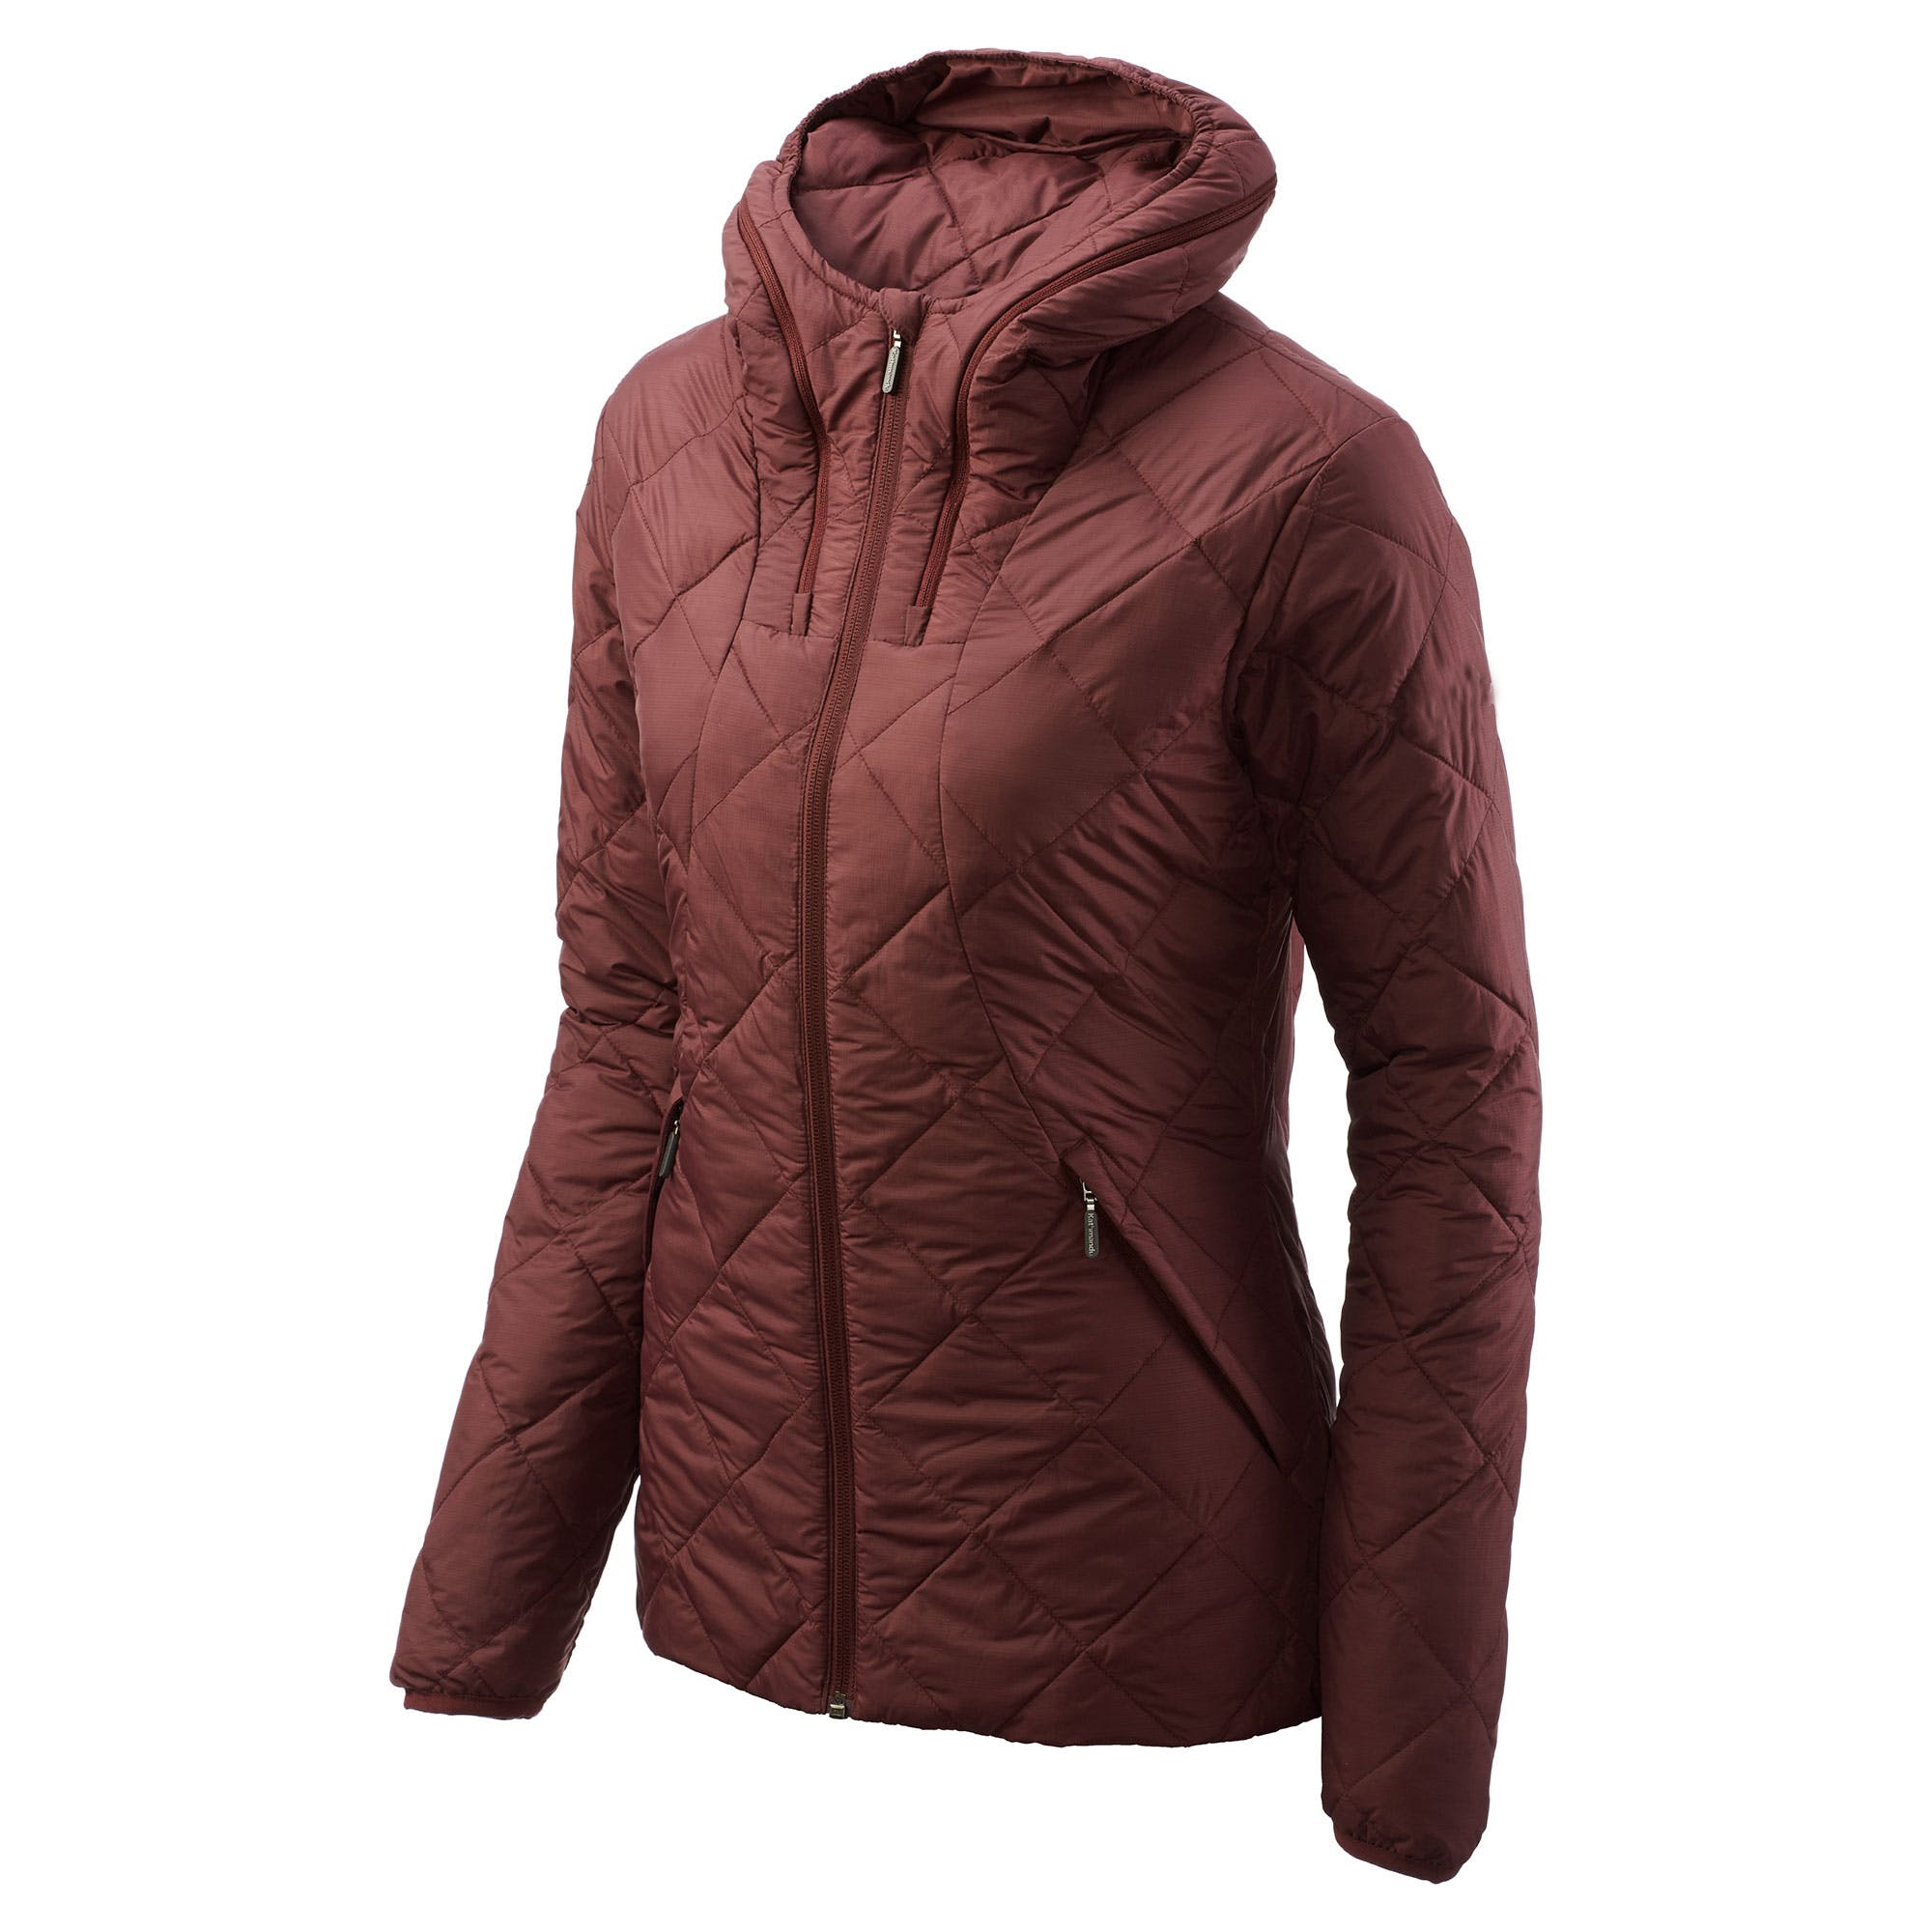 Lawrence Women's Insulated Jacket Manufacturers, Lawrence Women's Insulated Jacket Factory, Supply Lawrence Women's Insulated Jacket